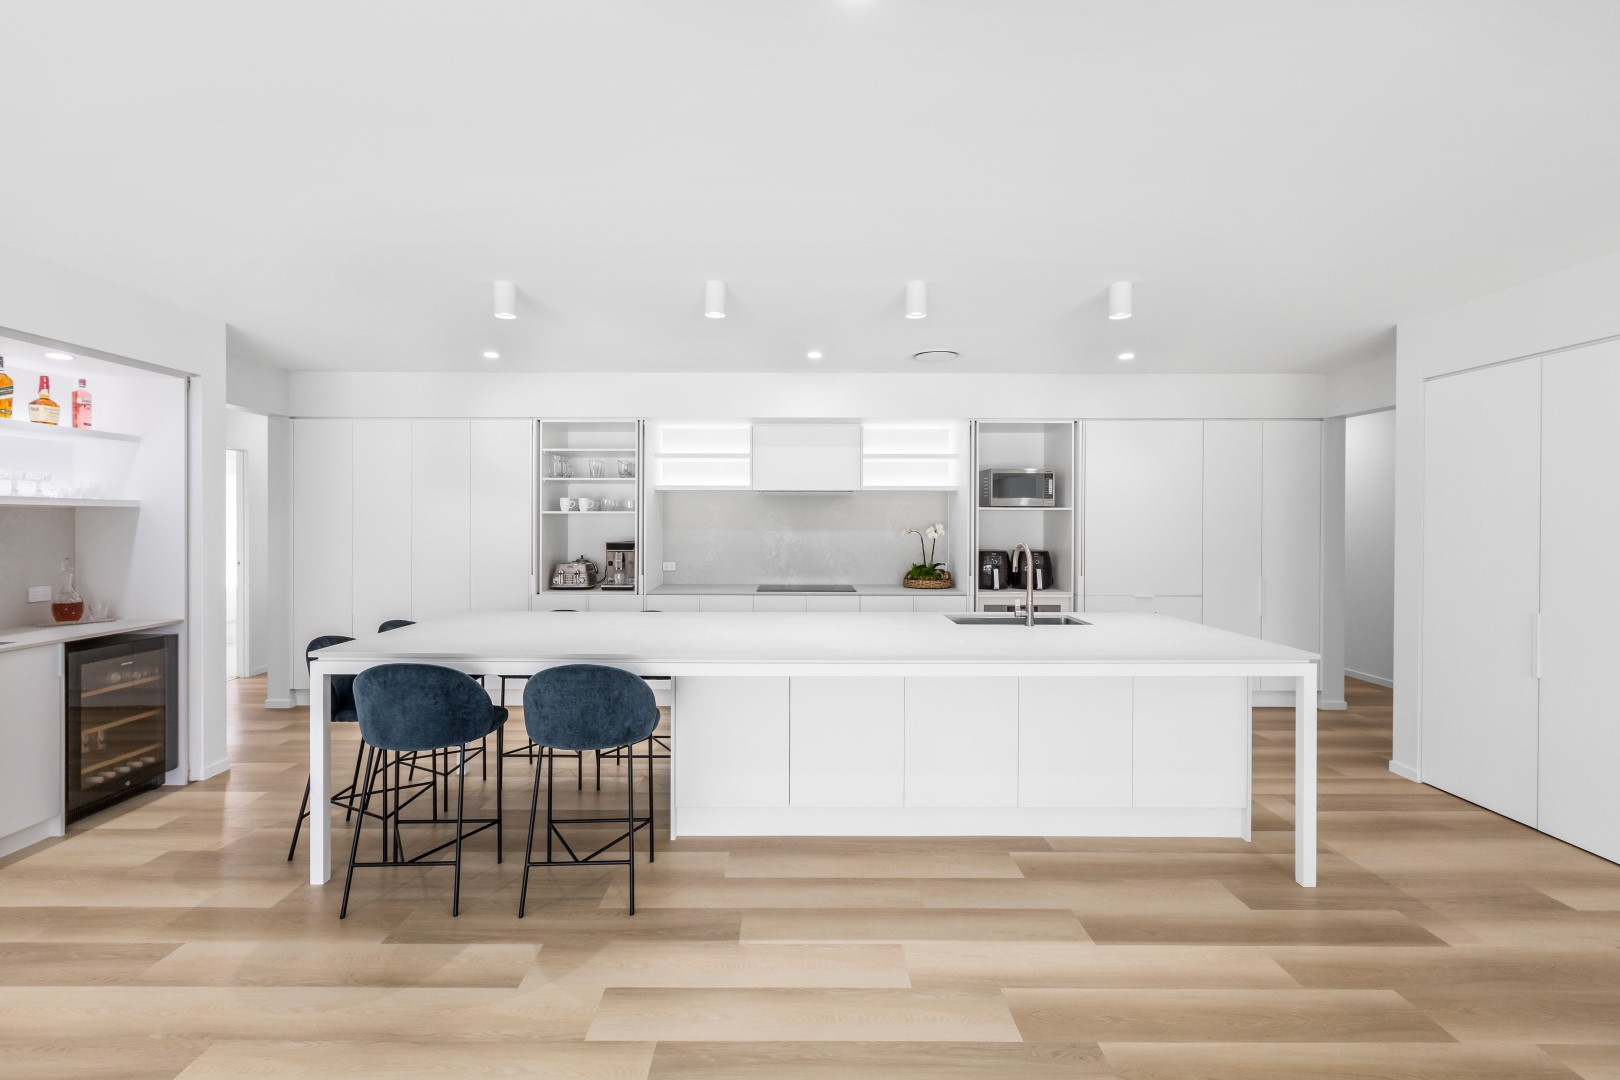 Cabinetmakers: Take on more projects, outsource production